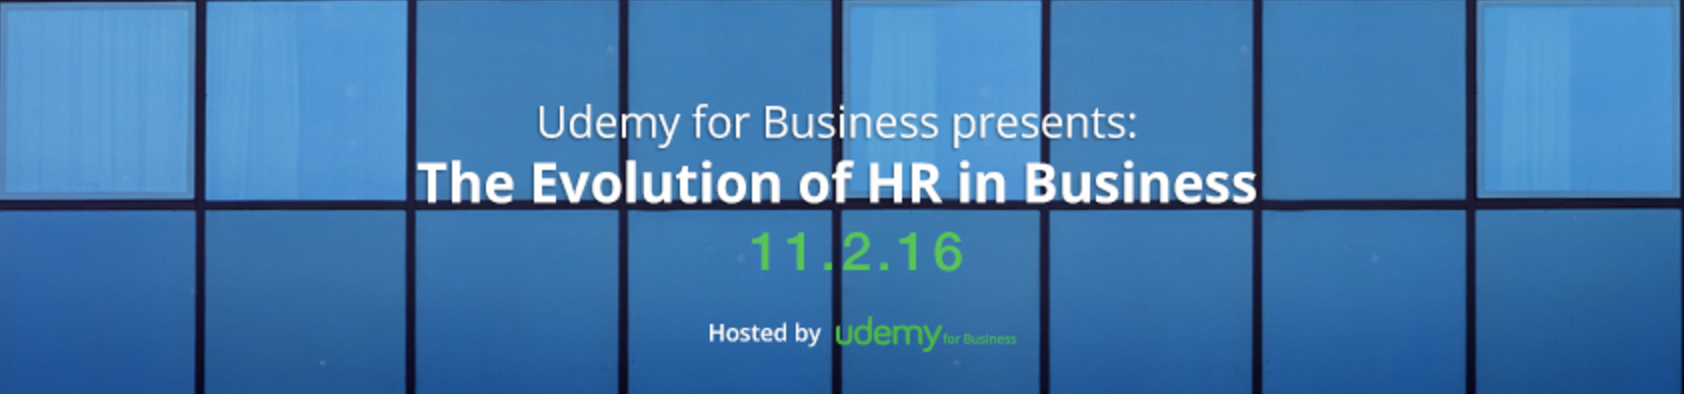 The Evolution of HR in Business